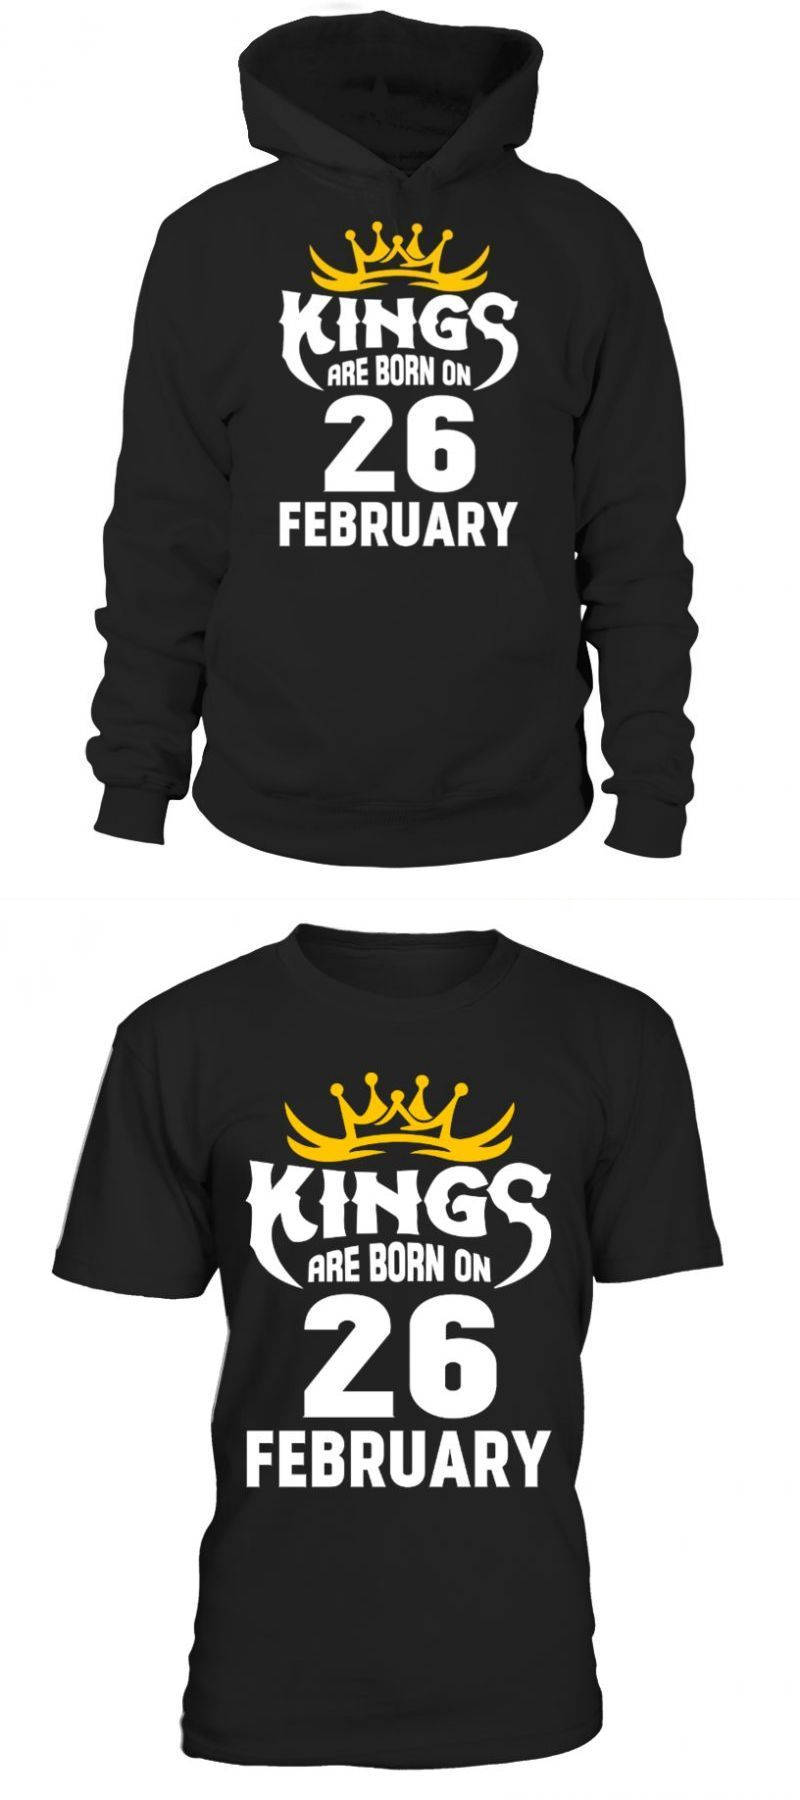 b2d4f4ad5 Father son t shirts kings are born on 26 february mother and son t shirt  design